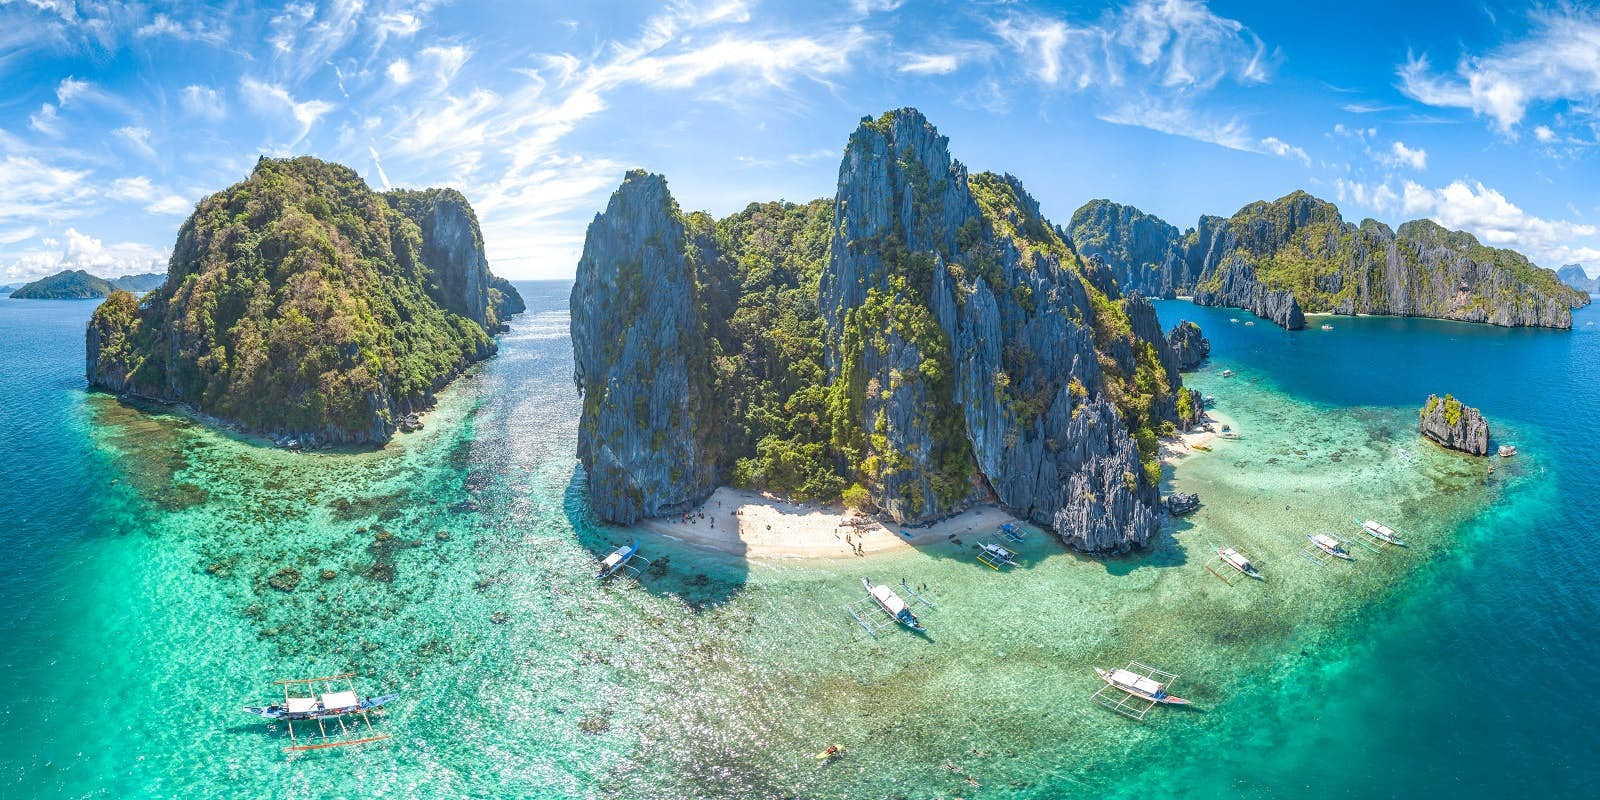 The Philippines for beginners: 7 first-timer fails to avoid on your trip - Lonely Planet